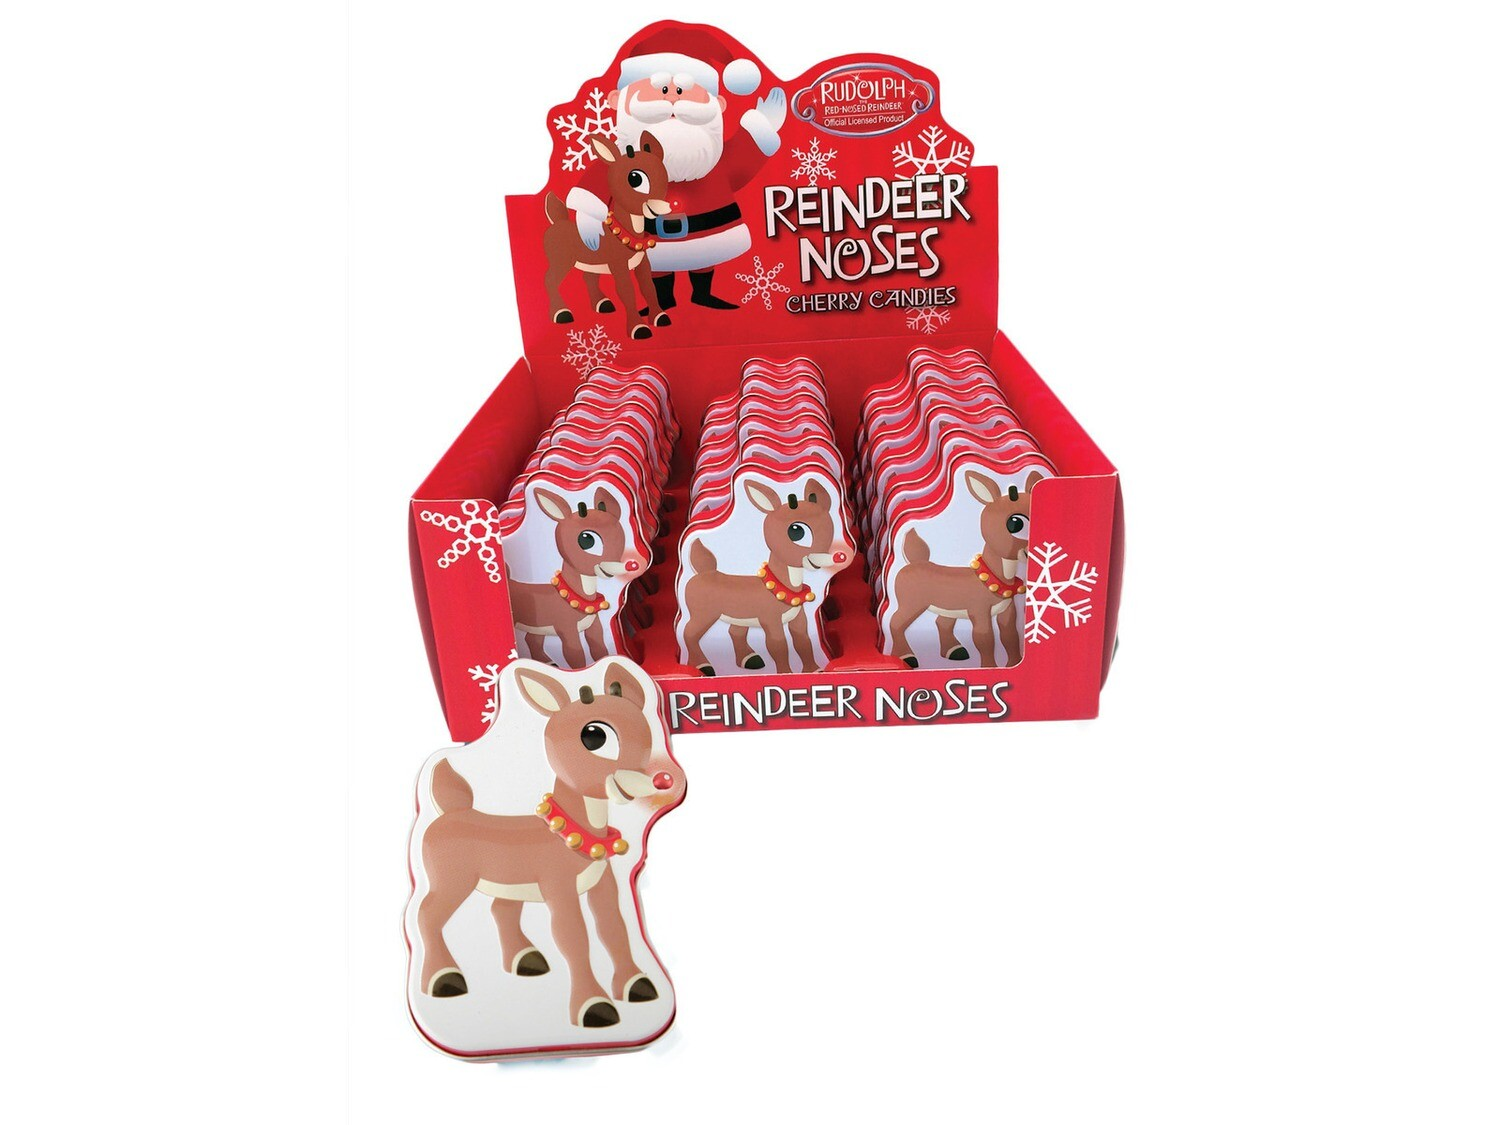 Rudolph Reindeer Noses Cherry Candies